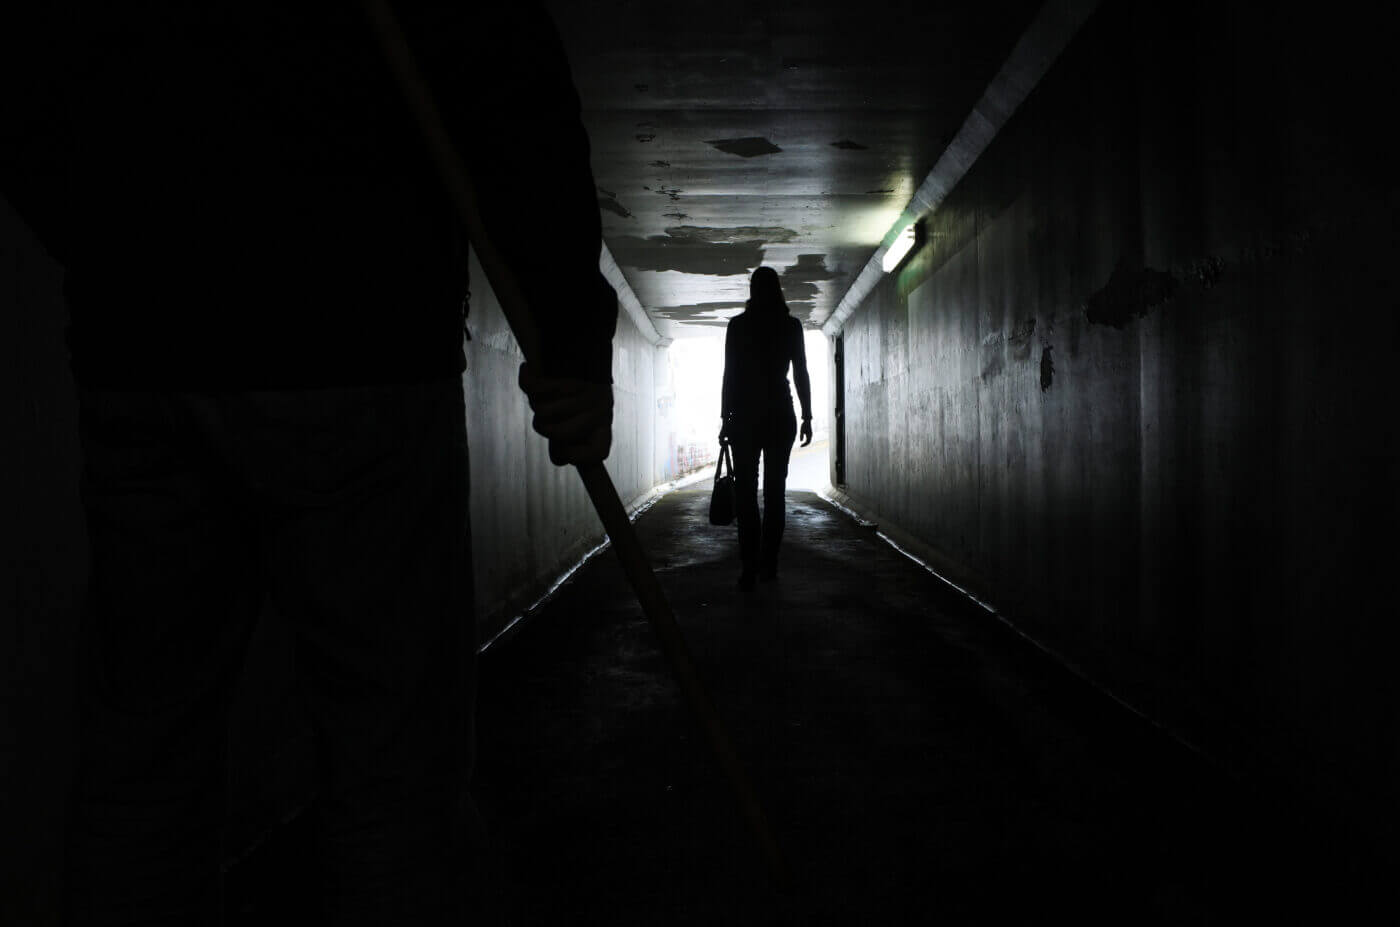 Stranger in dark tunnel and man with knife